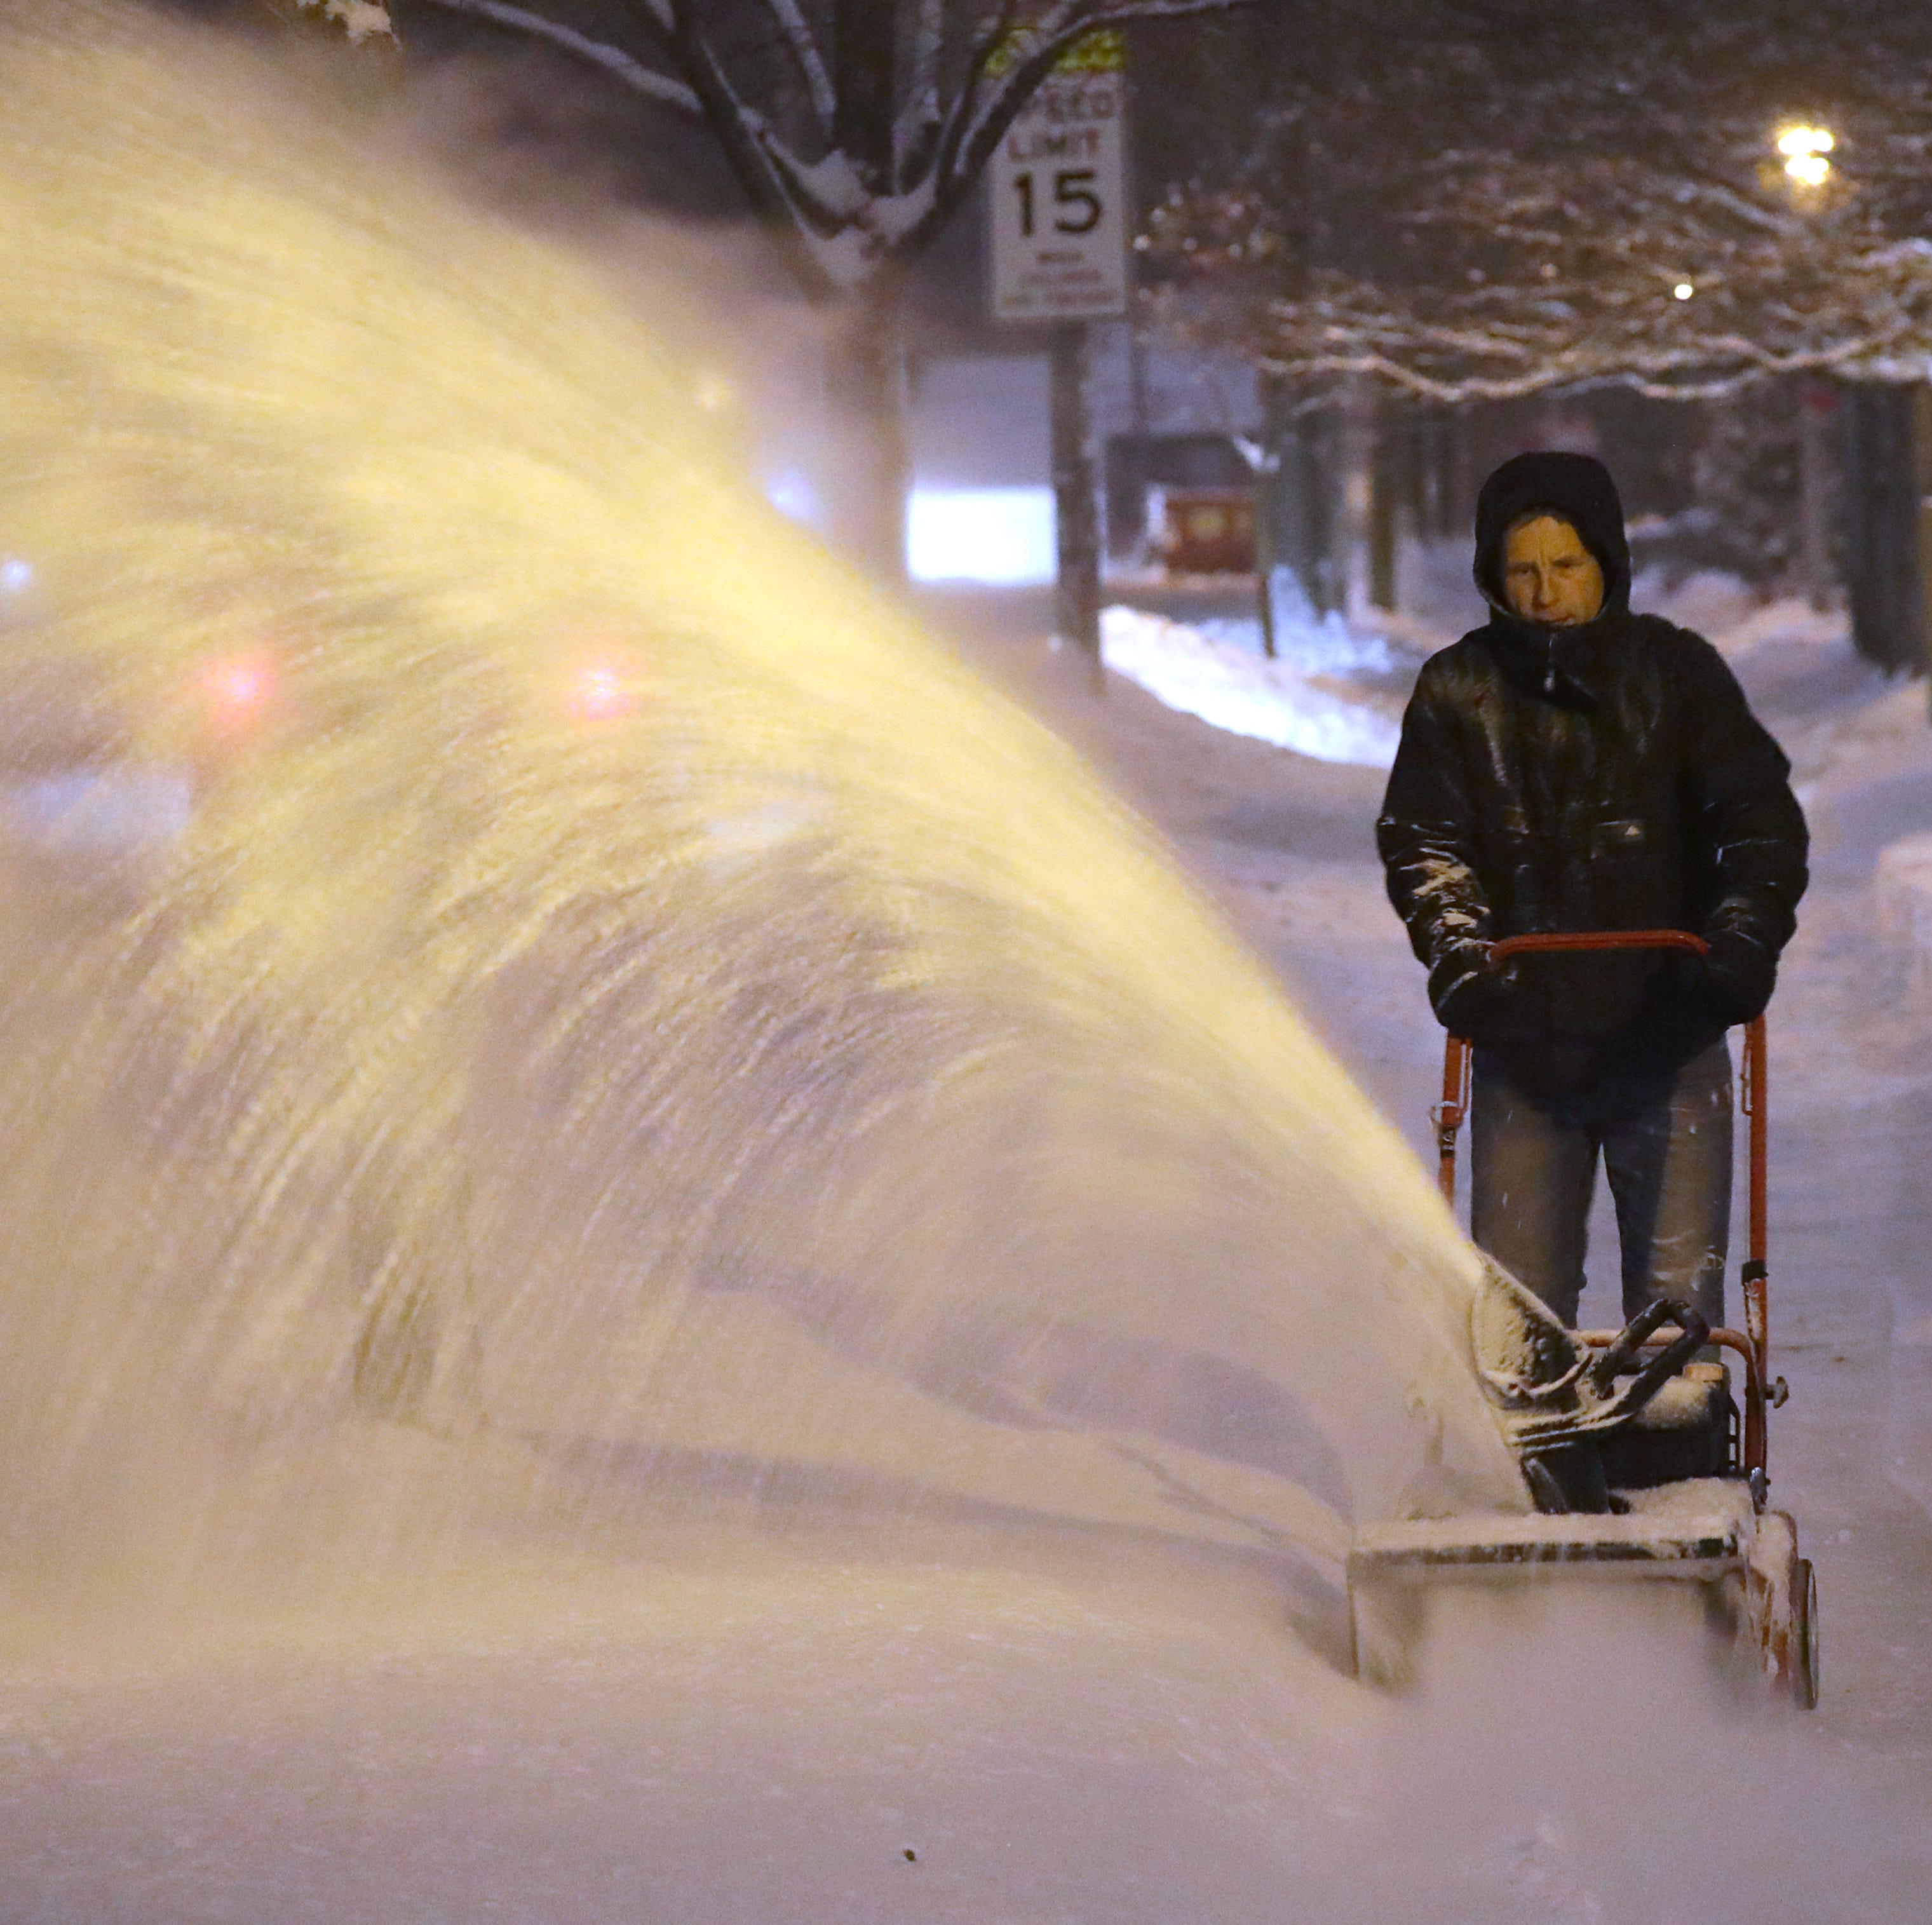 Second storm in a week could still drop up to 9 inches on Milwaukee area